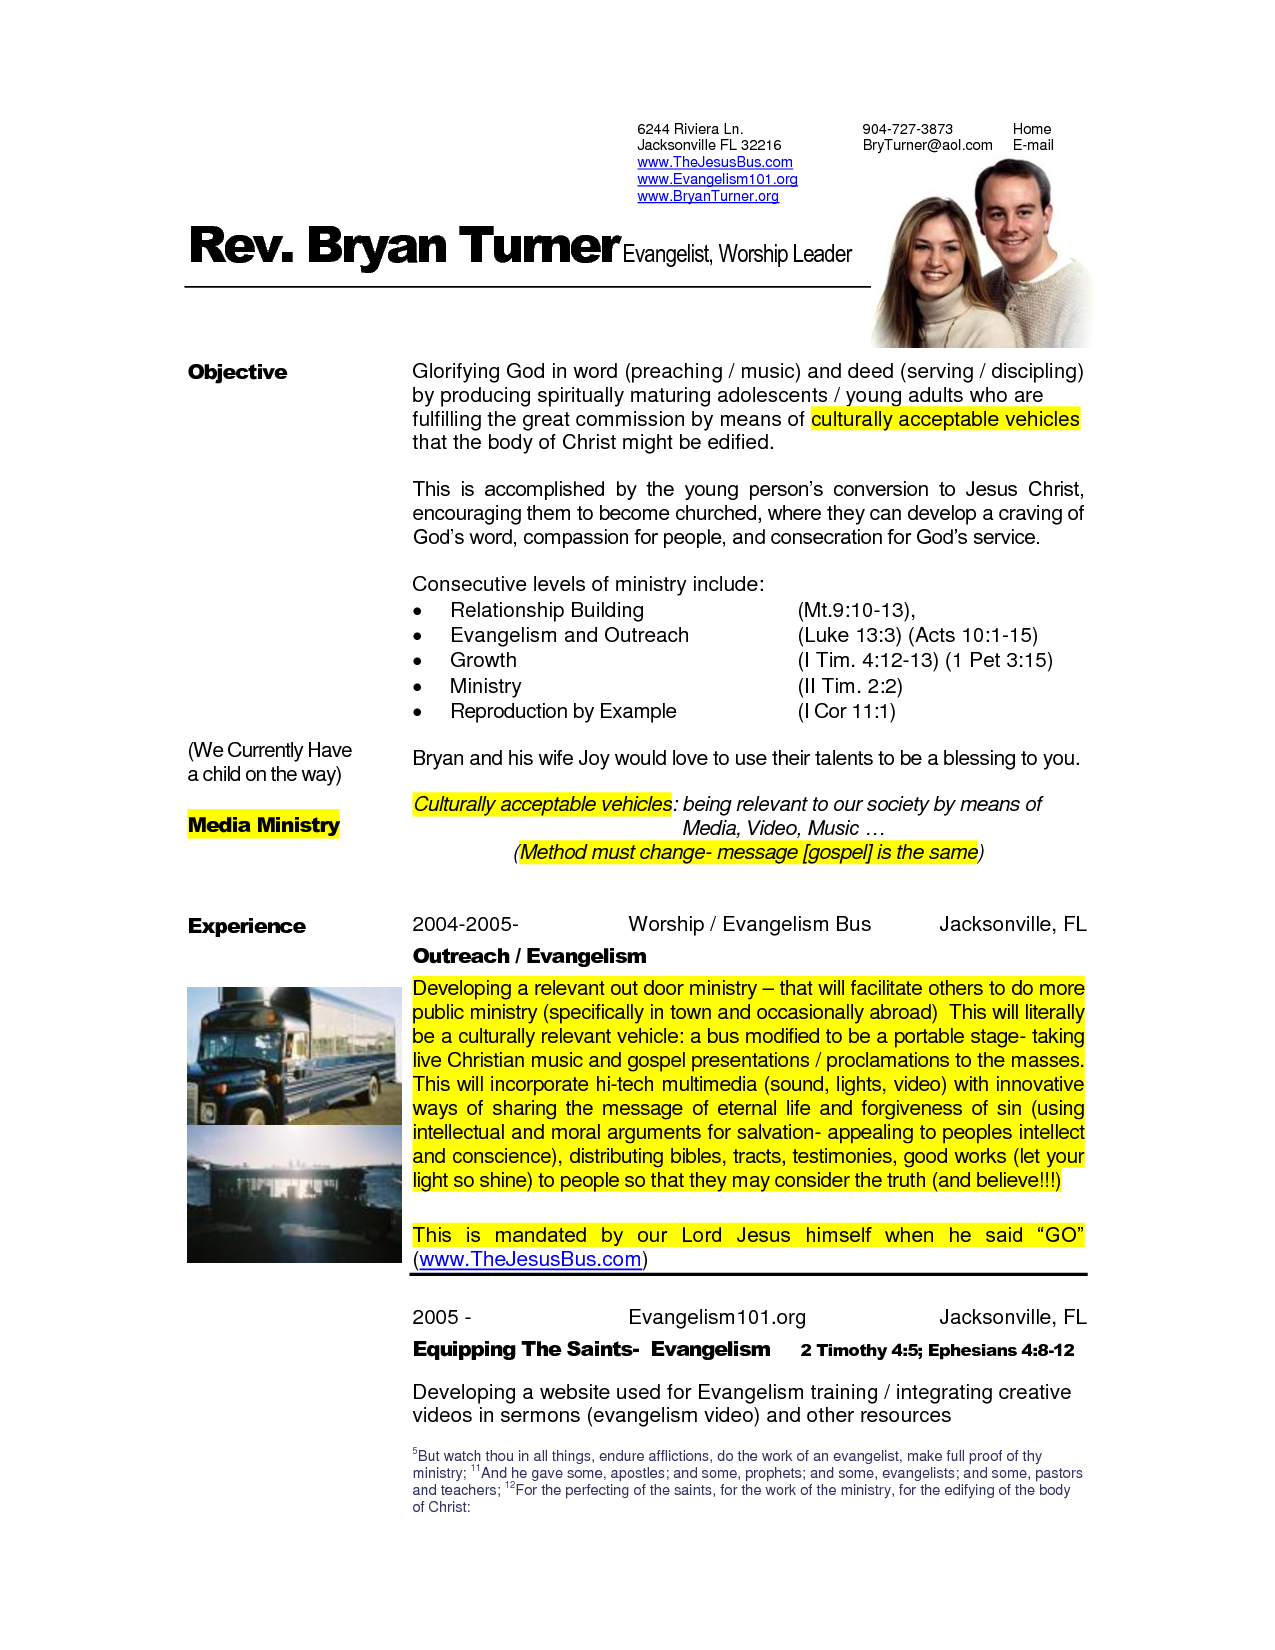 Free Examples of Pastoral Resumes | How to Write a Pastor Resume ...